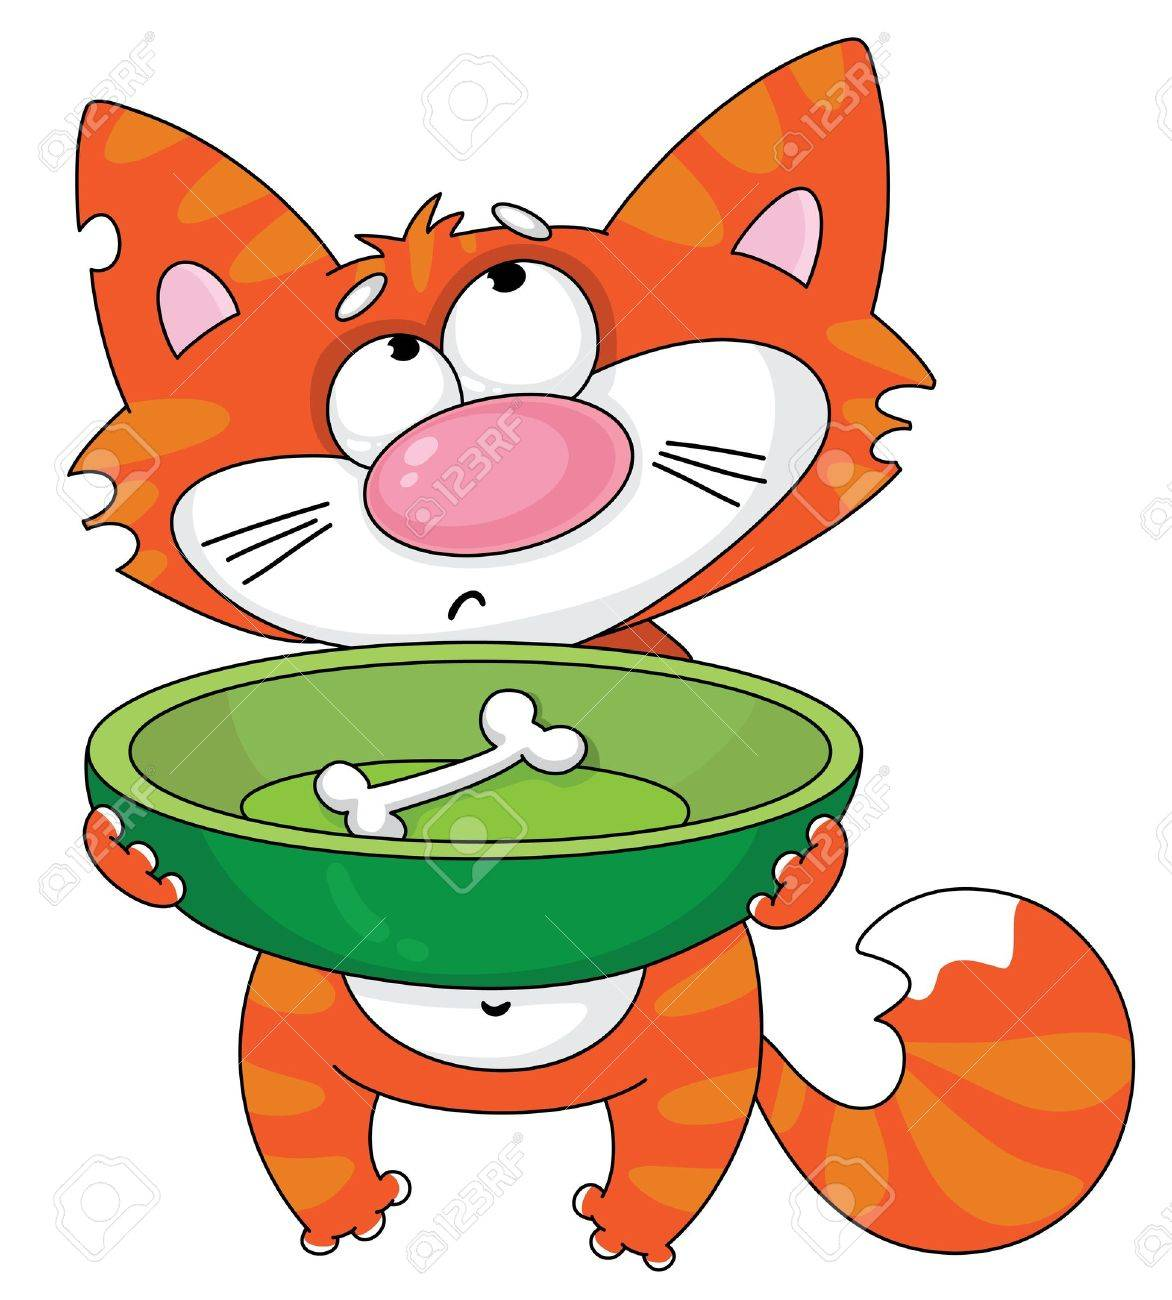 Illustration Of A Hungry Cat Royalty Free Cliparts Vectors And Stock Illustration Image 11592638